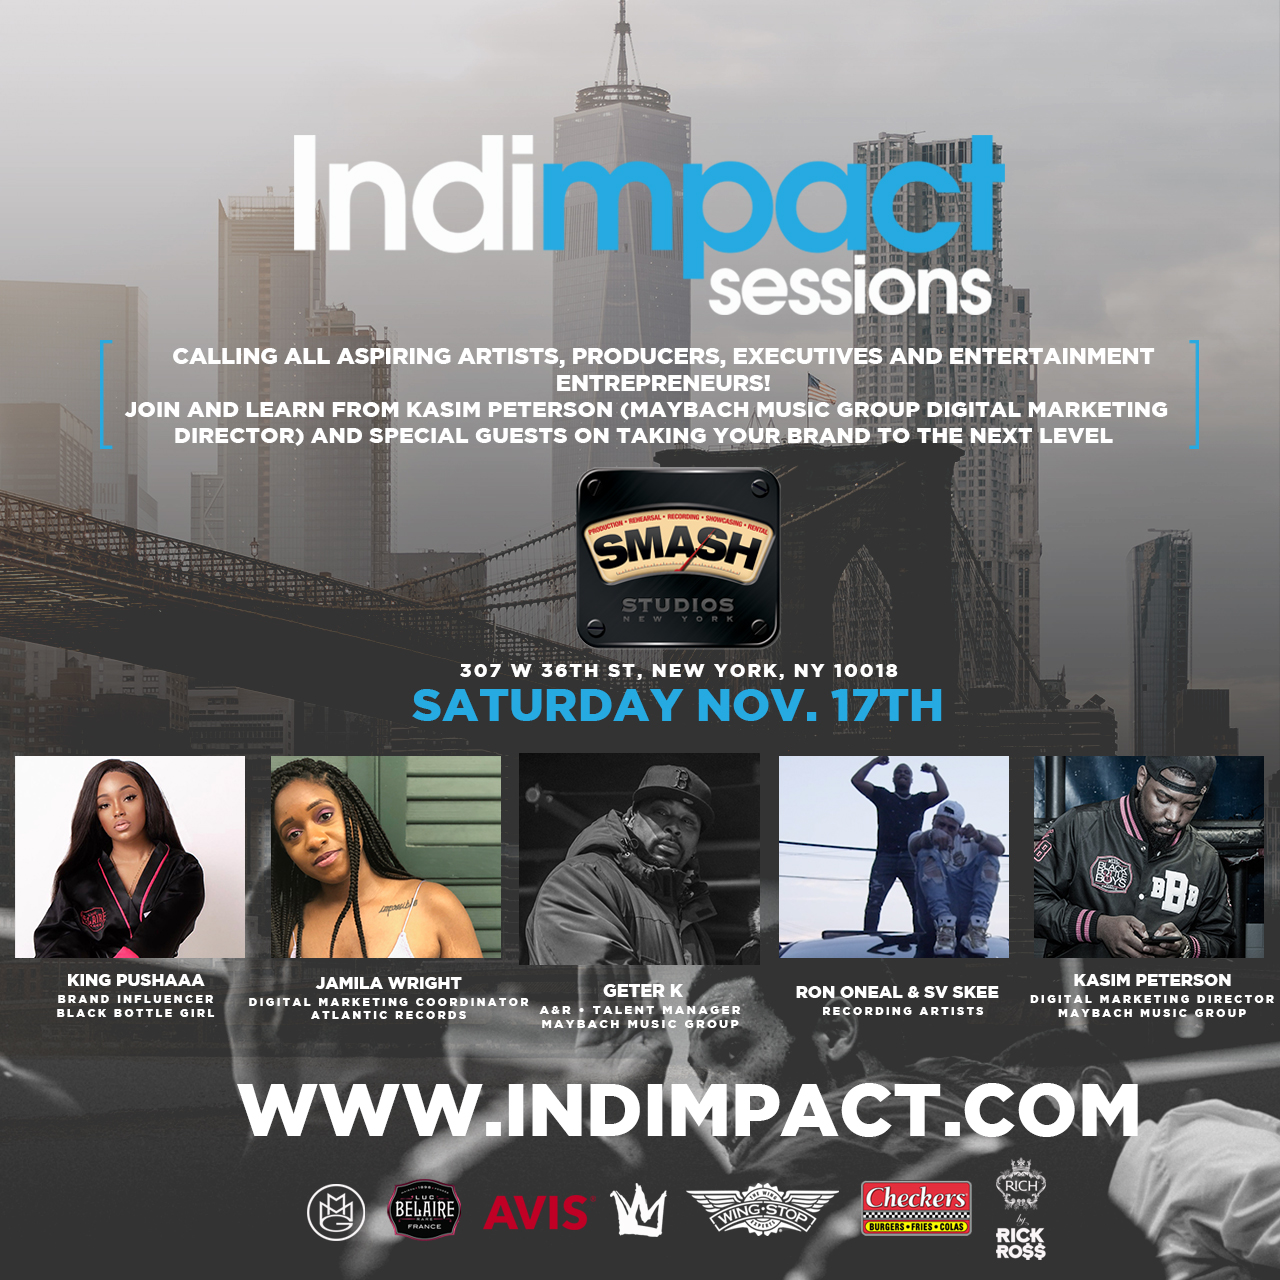 Indimpact Sessions: New York — IndiMPACT